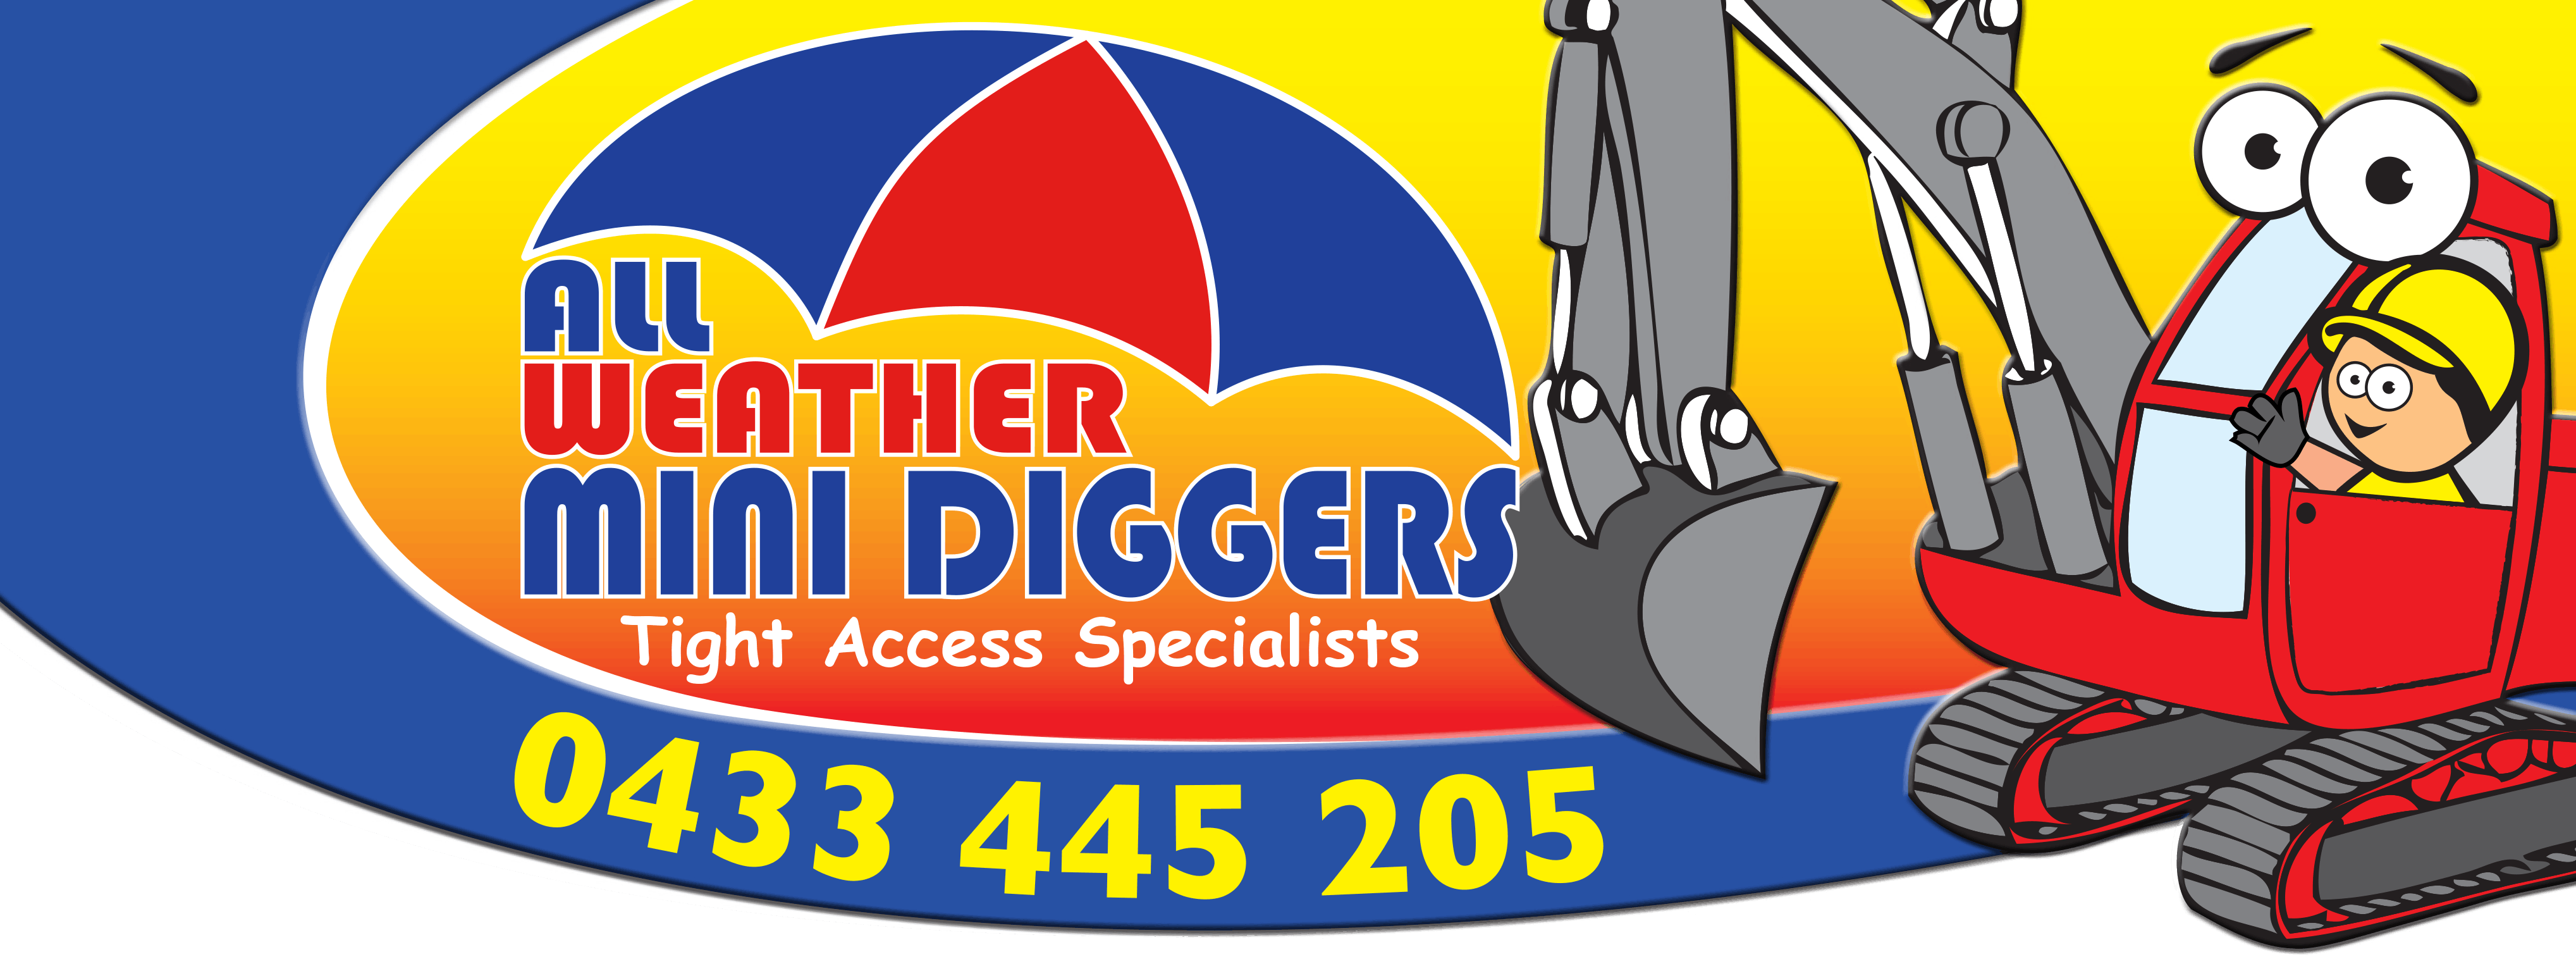 All weather mini diggers